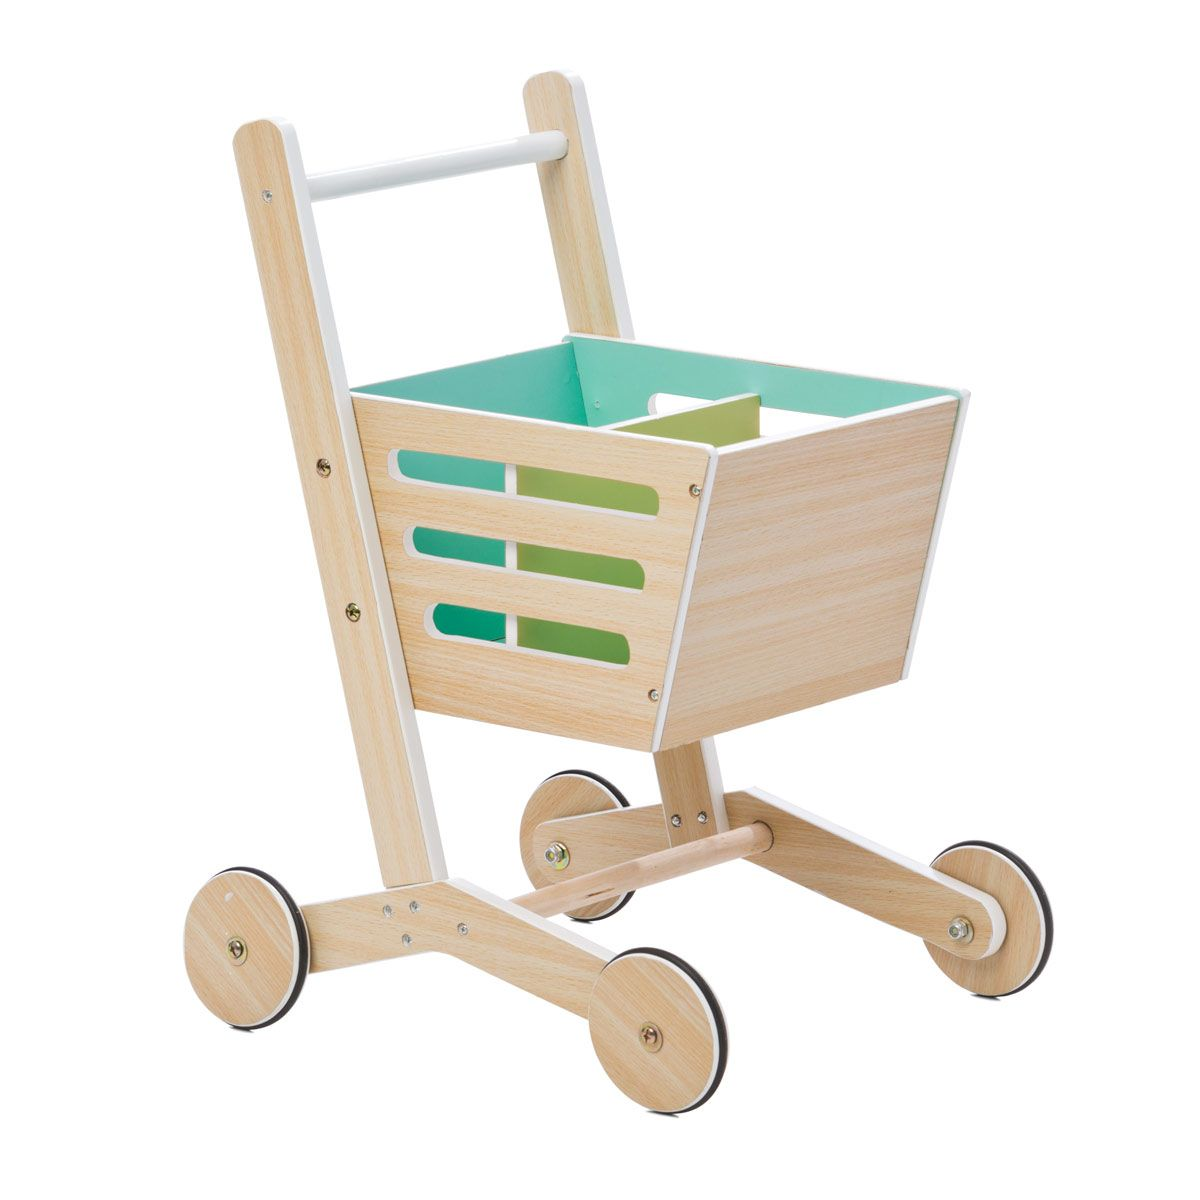 Infant Carrier Kmart Toy Shopping Trolley Kmart Wood Toys Toys Wooden Toys